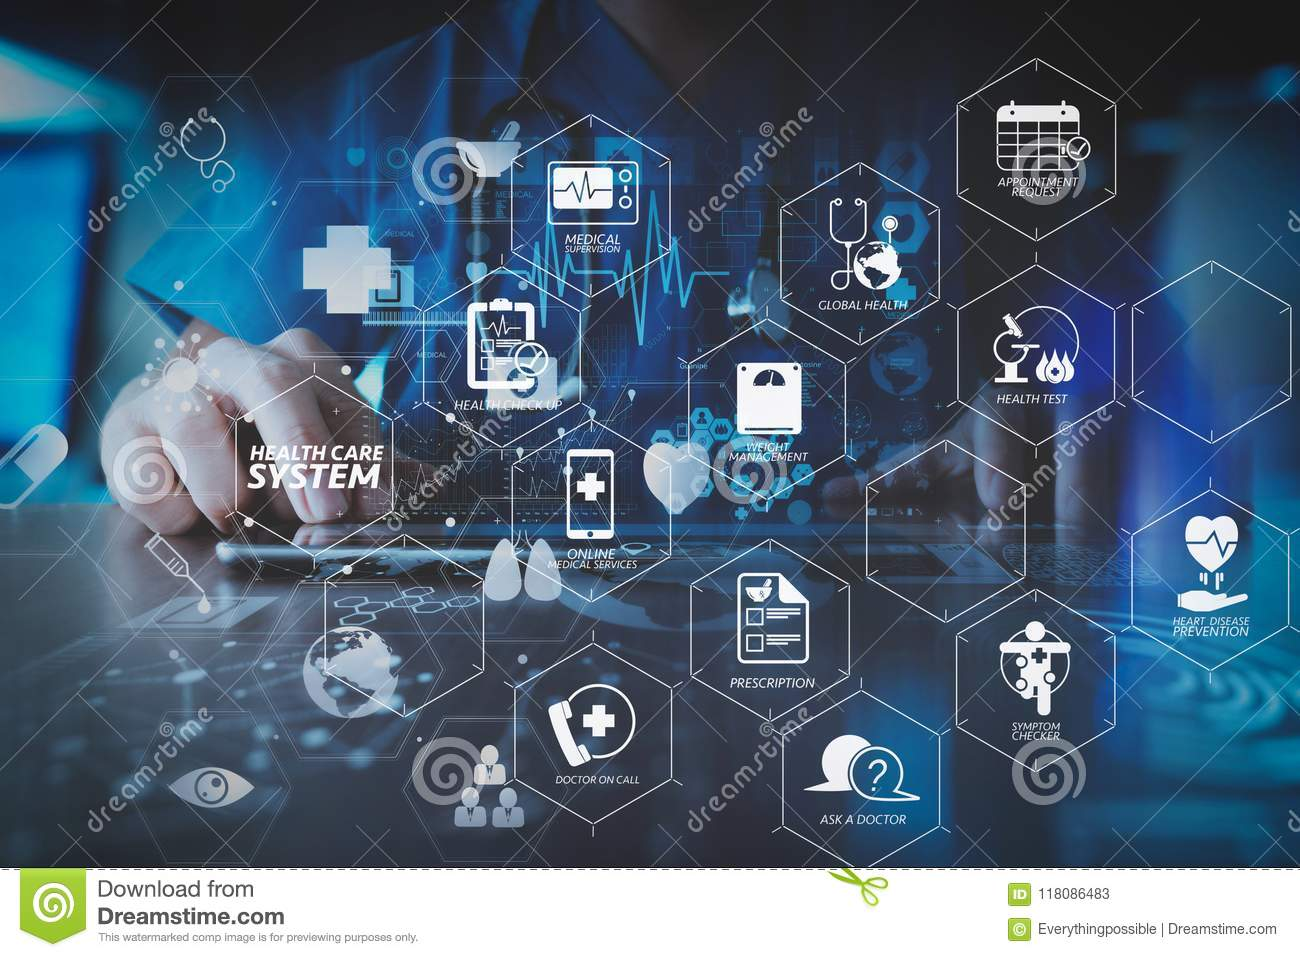 health care system diagram with health check and symptom on vr  dashboard medical techonlogy concept,smart doctor hand working with modern  laptop computer in